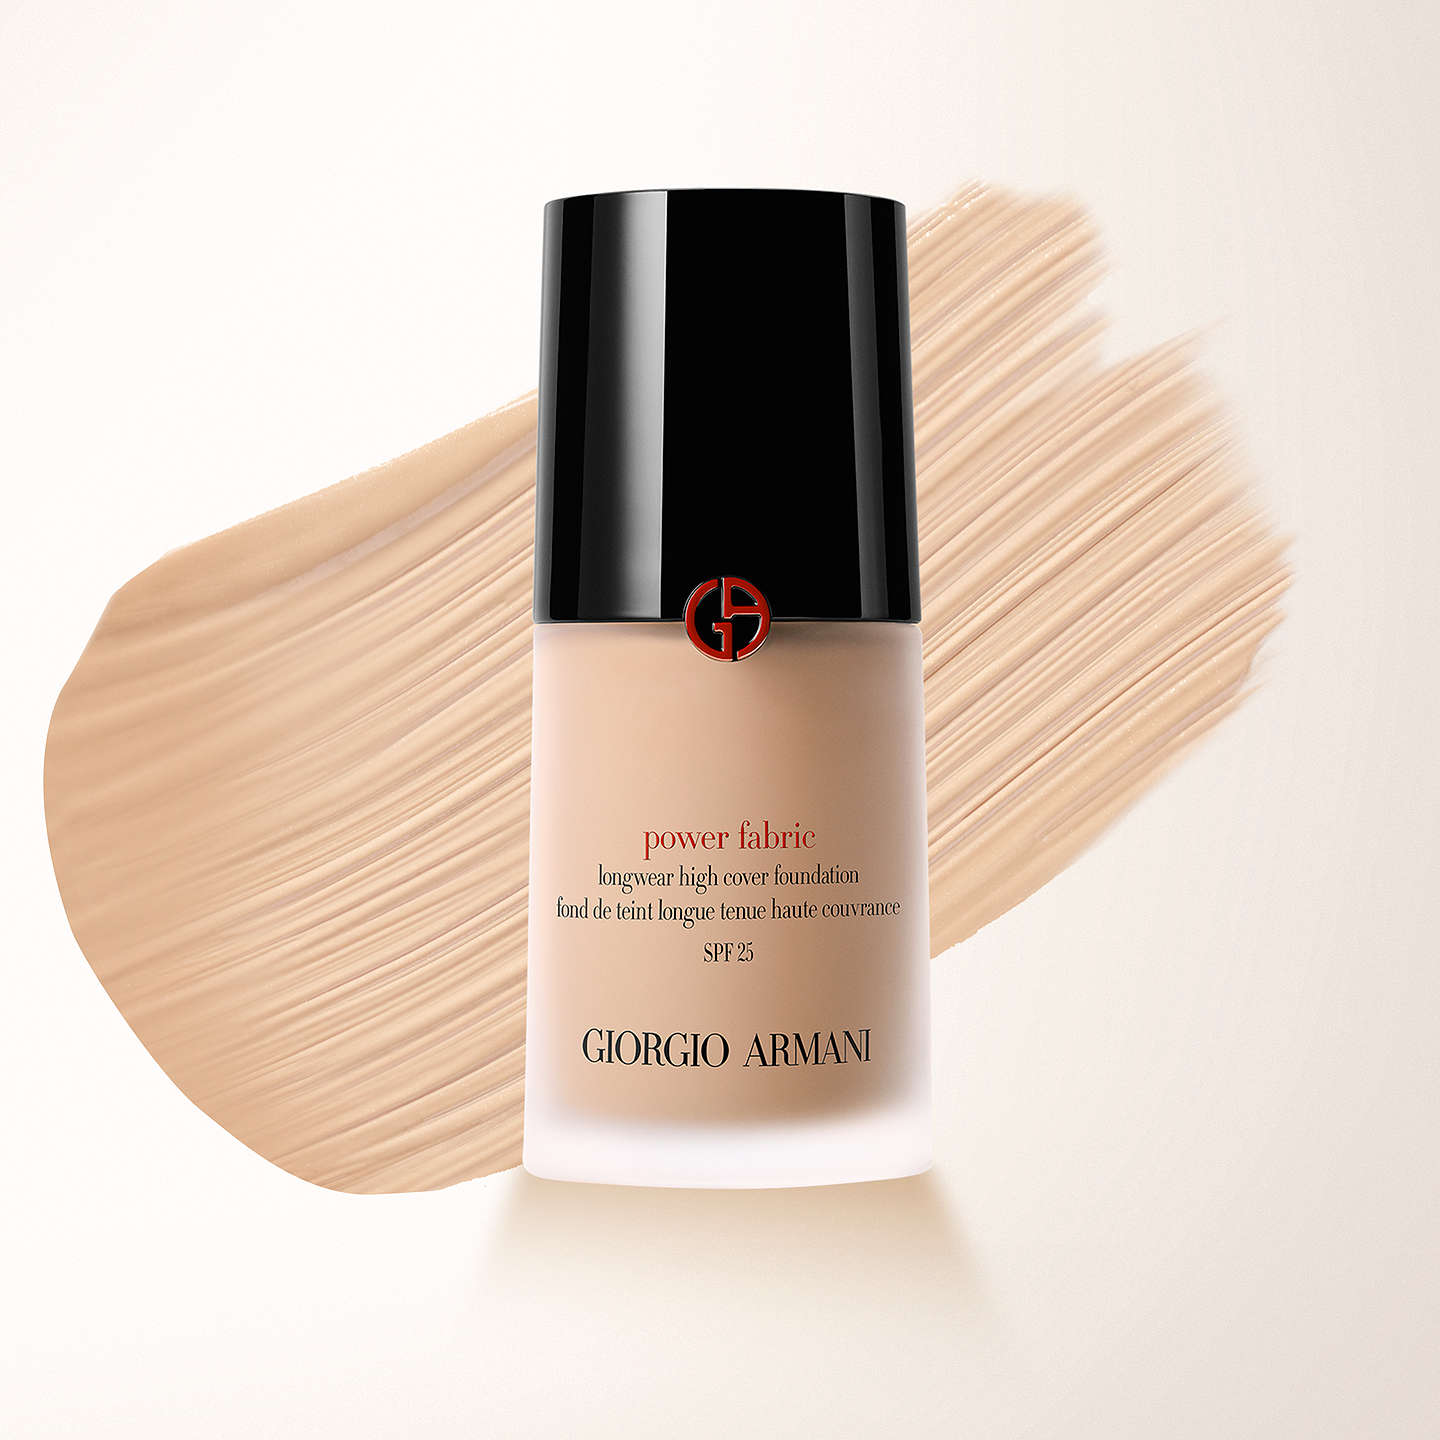 BuyGiorgio Armani Power Fabric Foundation, 5 Online at johnlewis.com